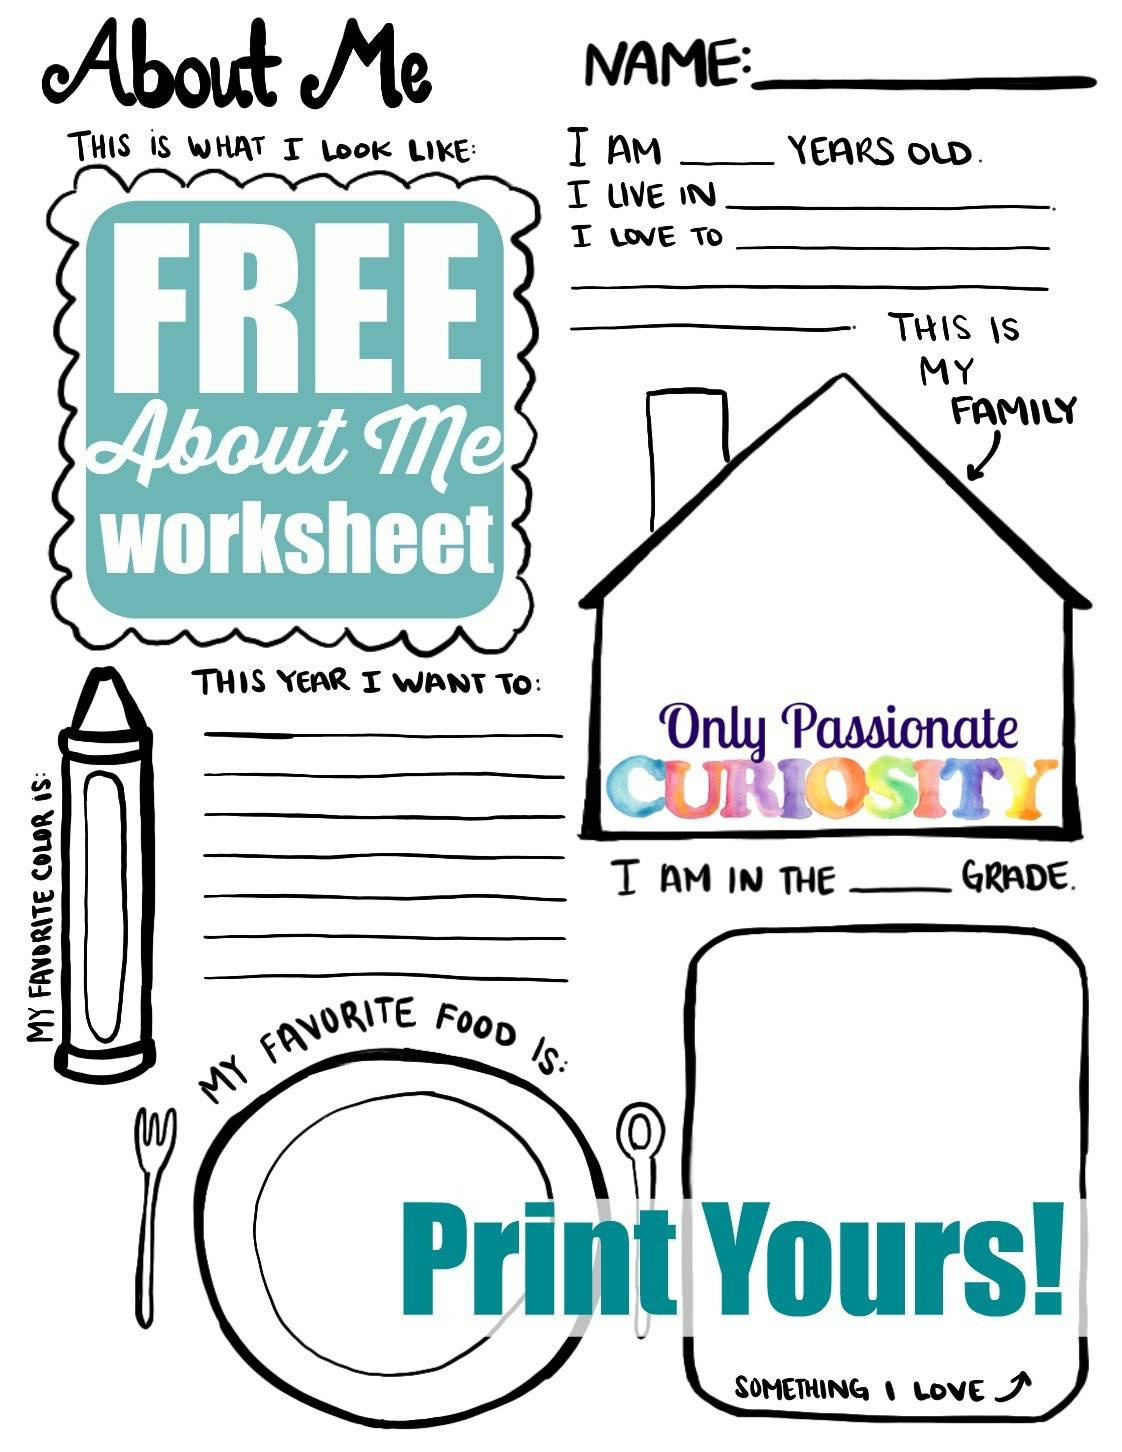 Shocking image in all about me free printable